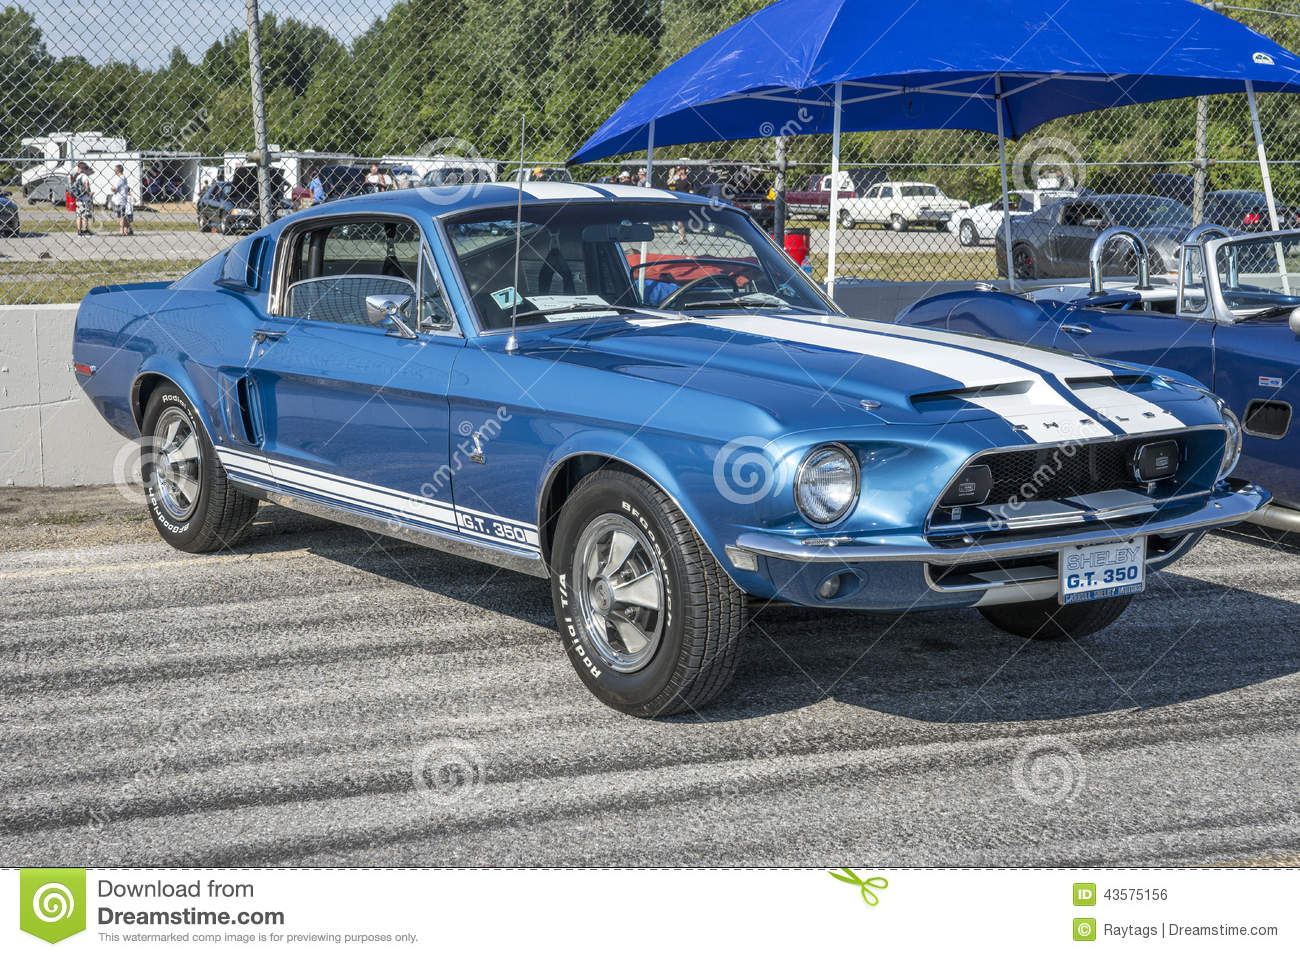 Sanair august 9 2014 front side view of blue 1968 mustang shelby gt with white lemans stripes at 19e super ford show